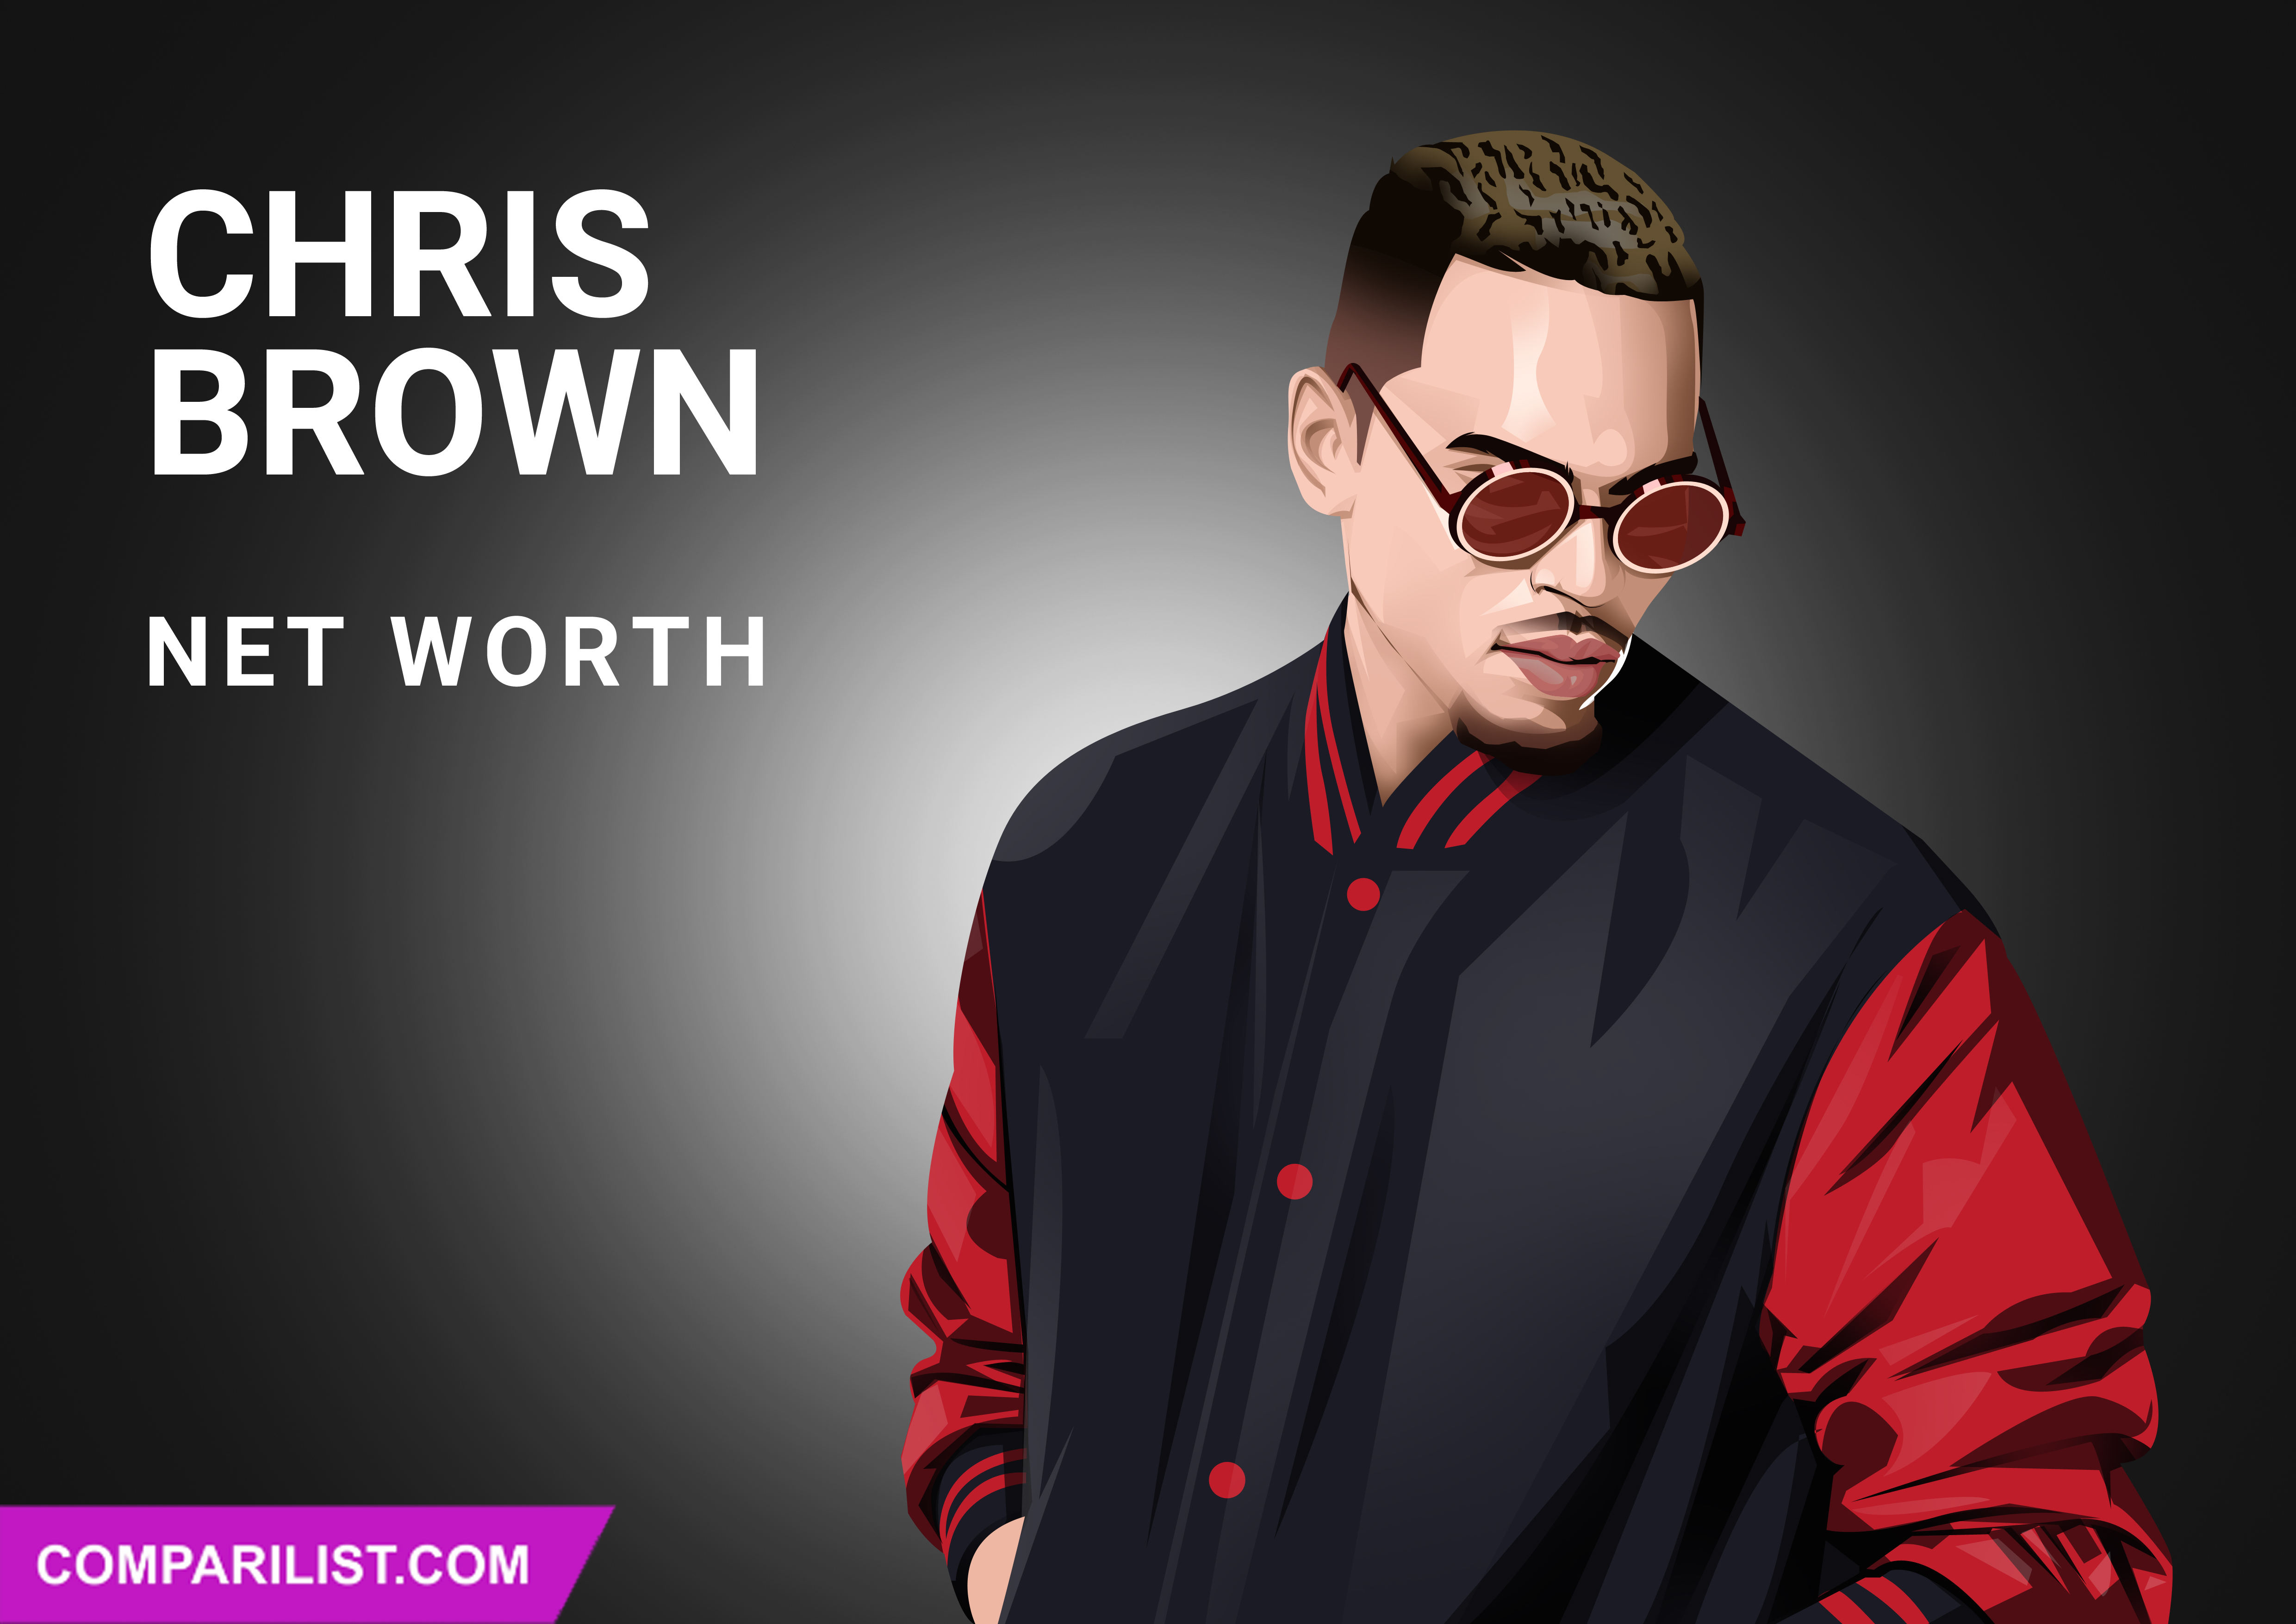 Chris Brown Net Worth 2019 | Sources of Income, Salary and ...